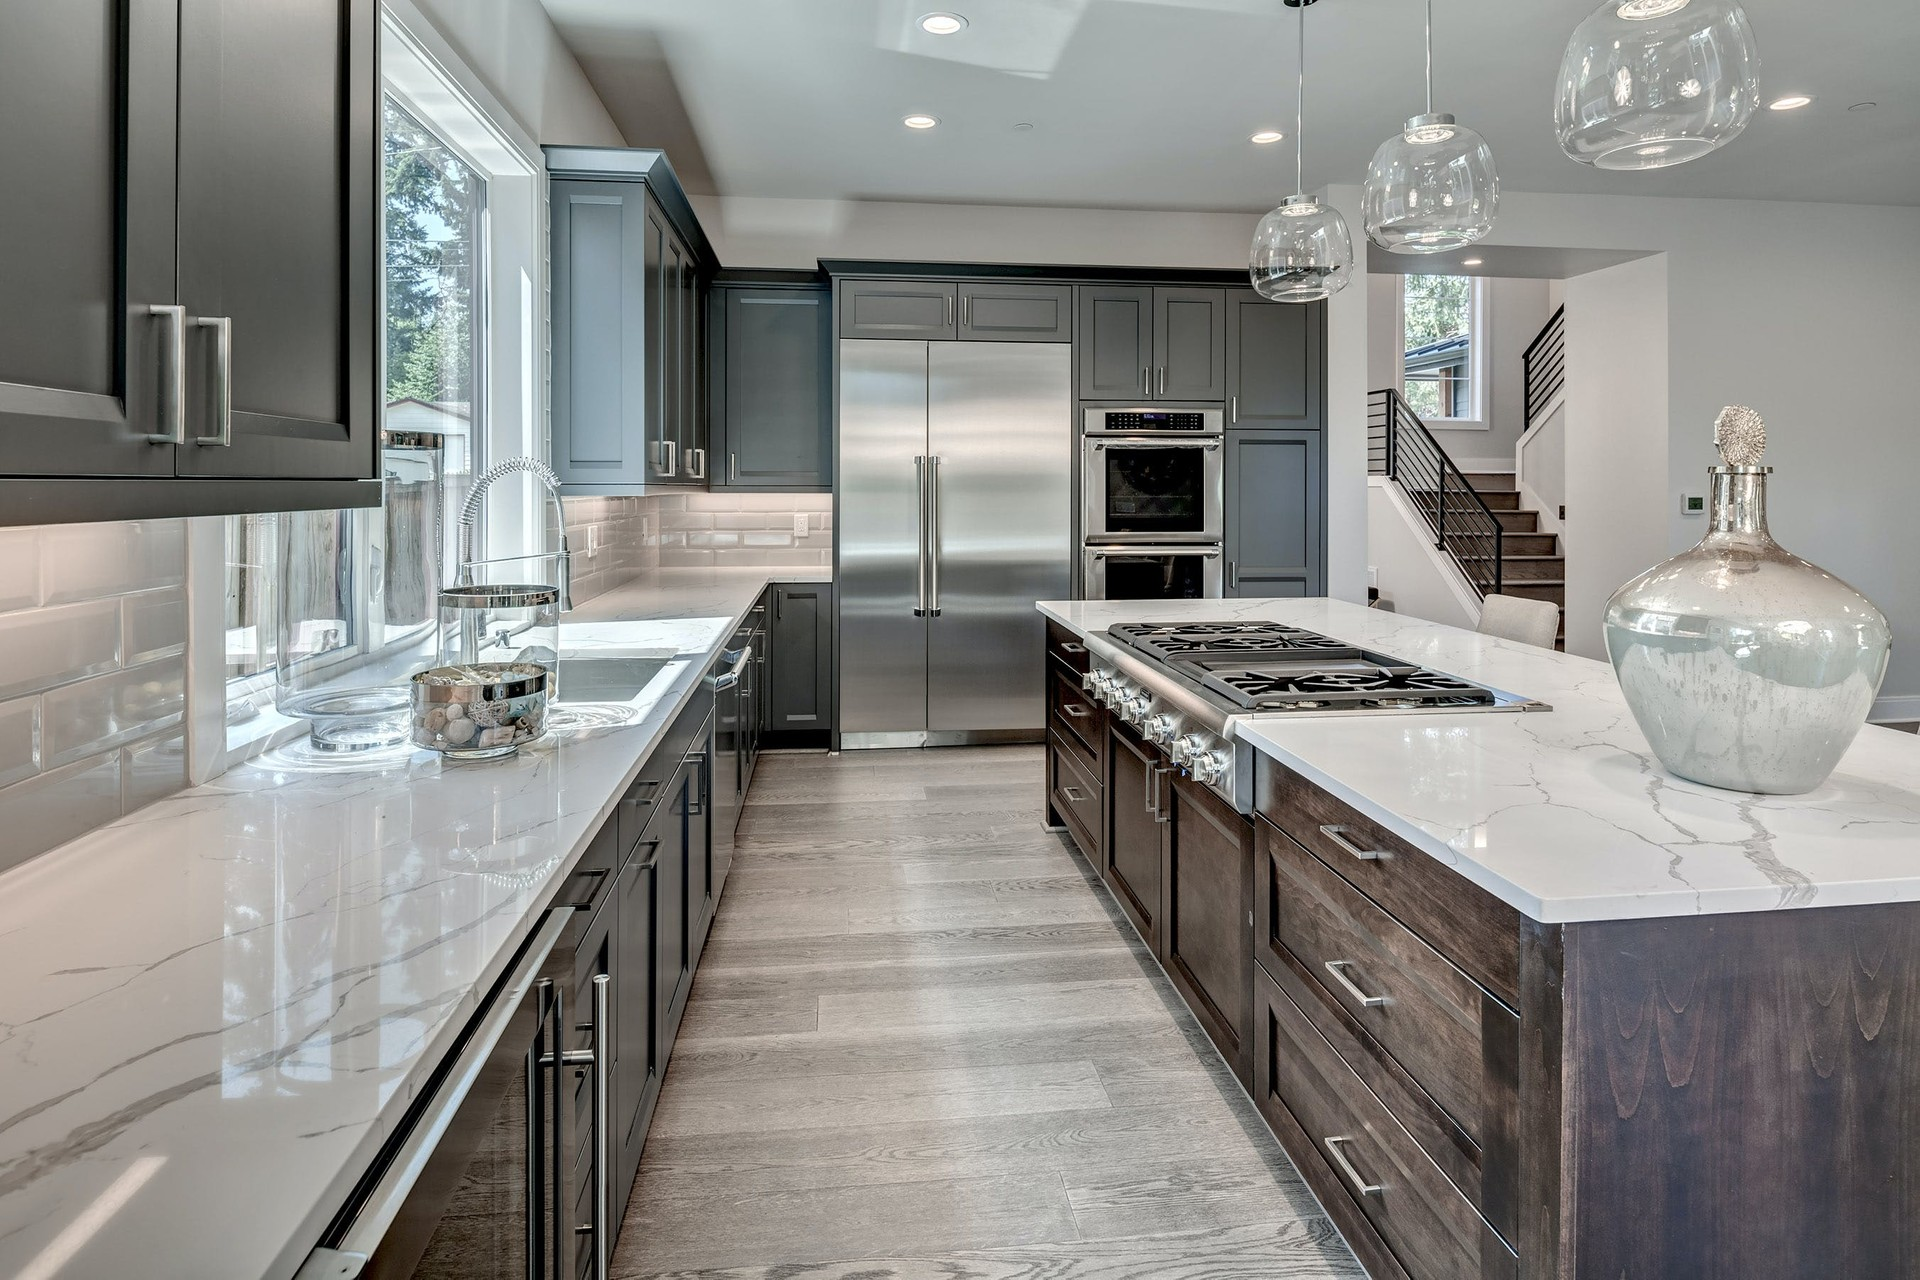 Kitchen Remodeling, Brooklyn remodeling contractor, Citypro COntracting LLC, Citypro COntracting